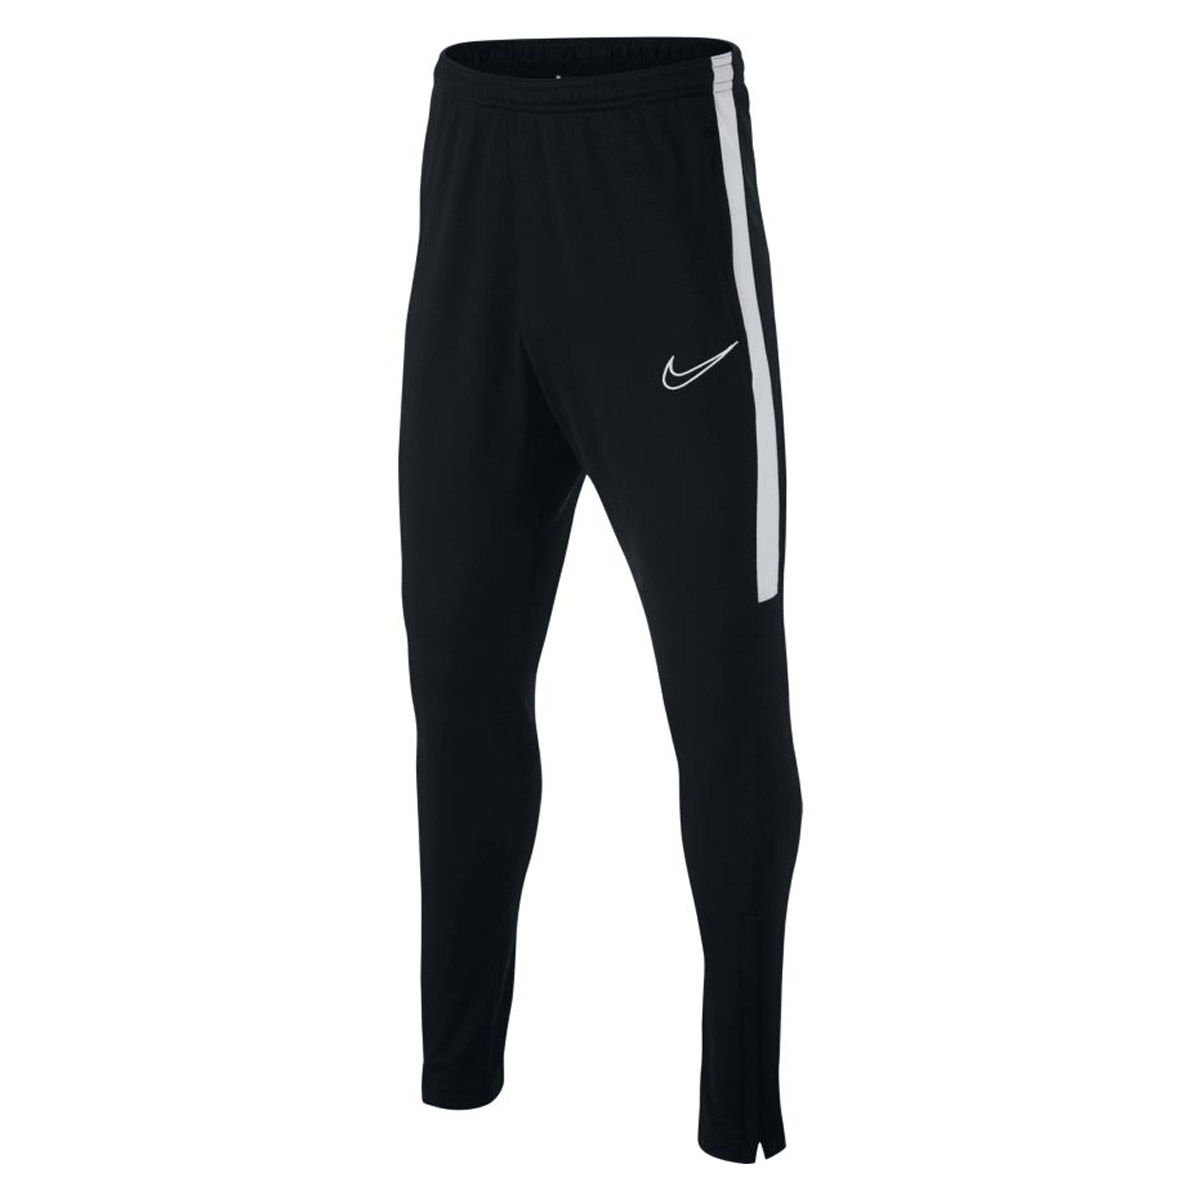 Nike Dri-FIT Academy Youth Training Pant